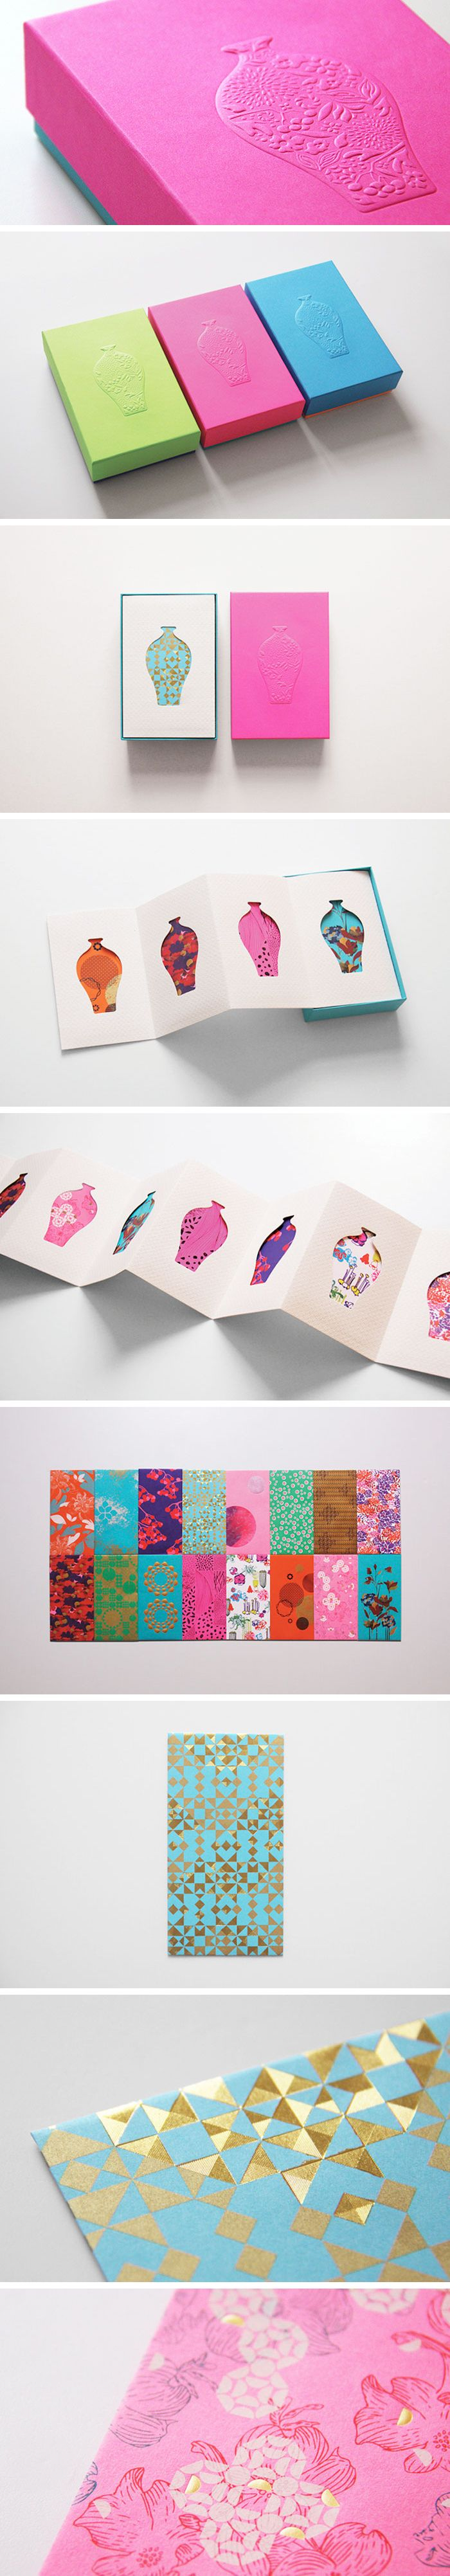 Polytrade Paper: Chinese New Year Pockets